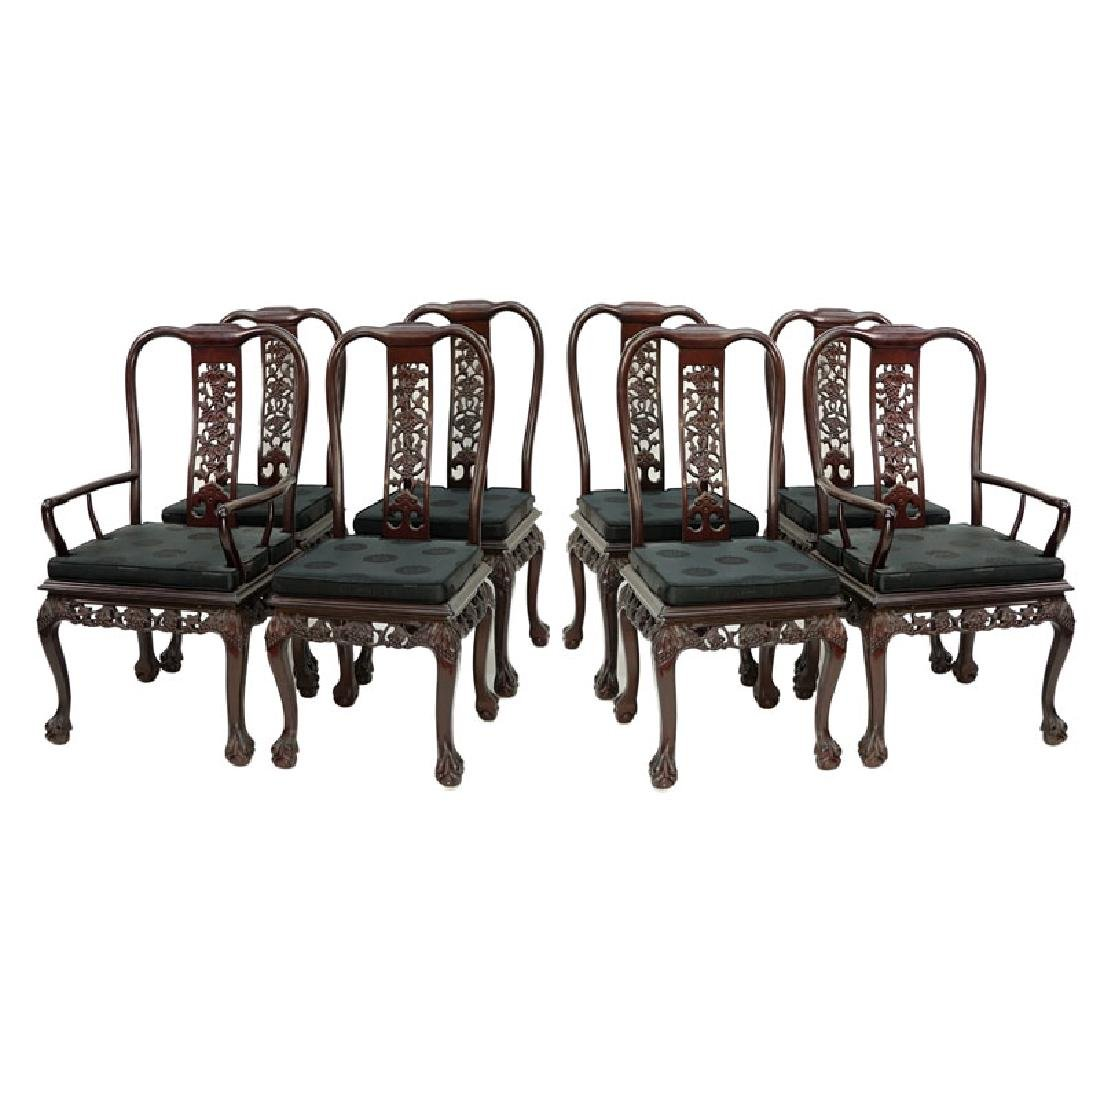 Set of Eight (8) Modern Chinese Carved Hardwood Chairs - 2